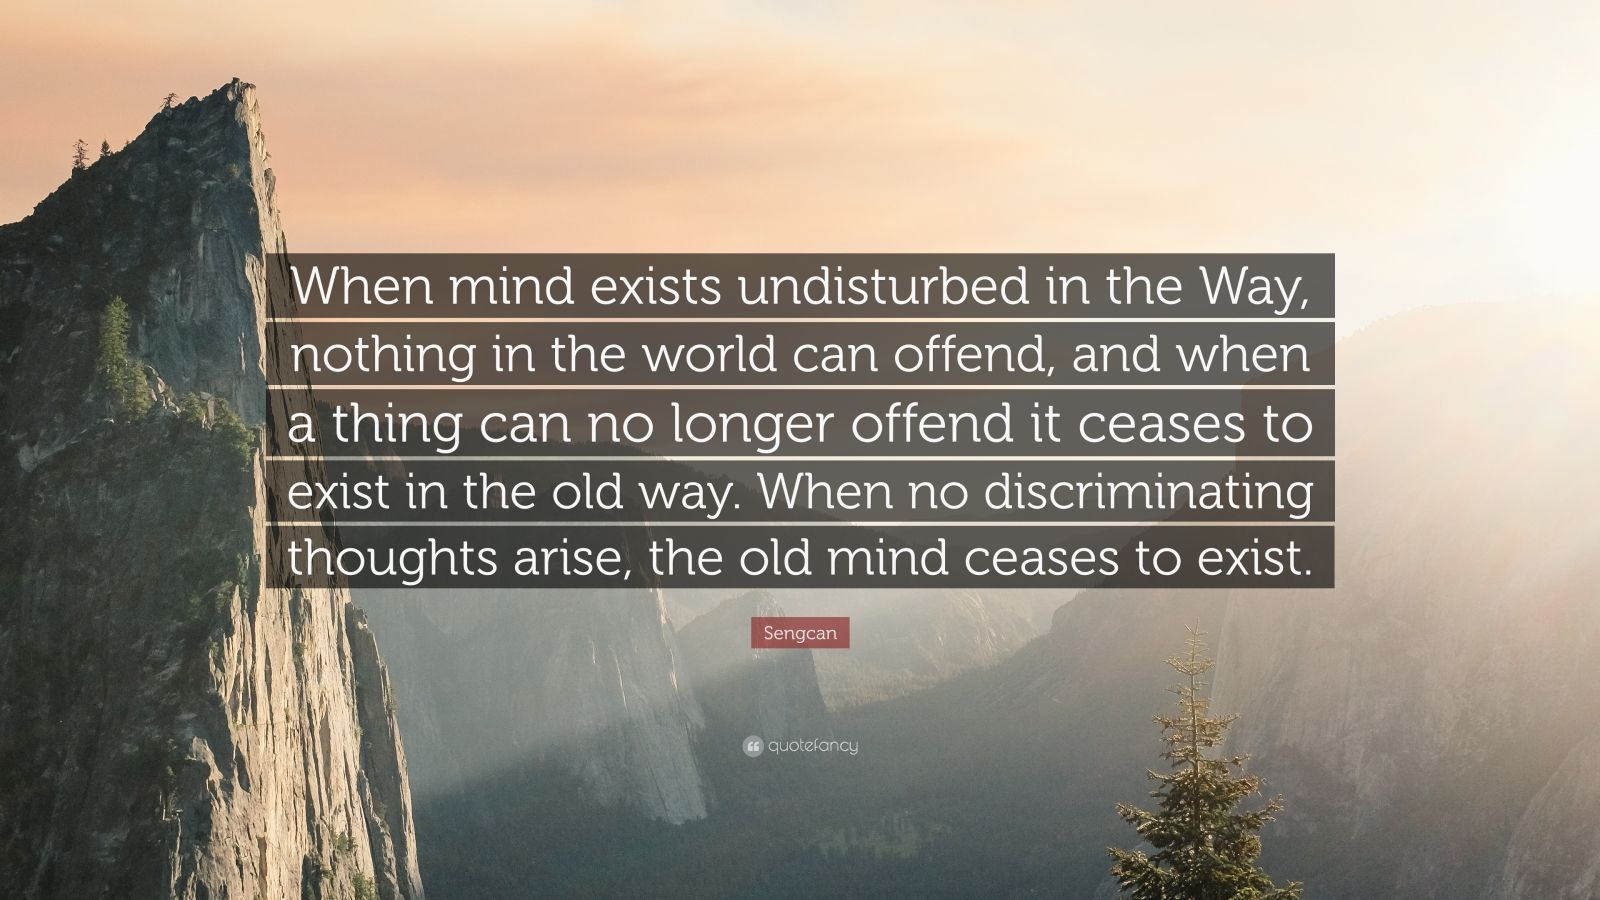 """Sengcan Quote: """"When mind exists undisturbed in the Way, nothing in the world can offend, and when a thing can no longer offend it ceases to exist in the old way. When no discriminating thoughts arise, the old mind ceases to exist."""""""